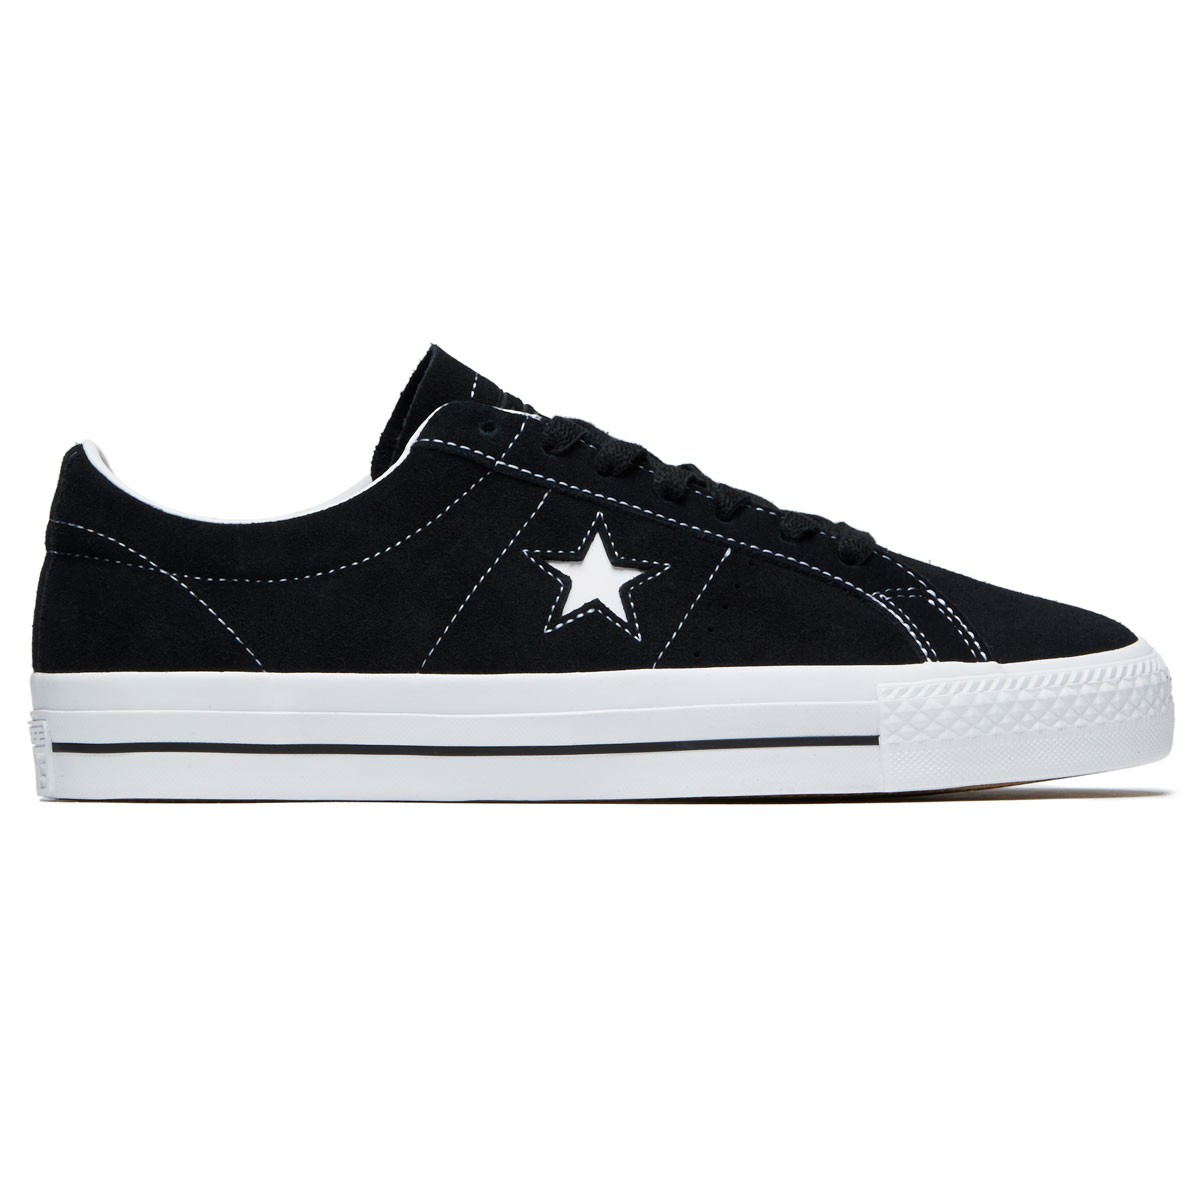 bc362182aaa7 Converse One Star Pro Ox Shoes - Black White White - 8.0